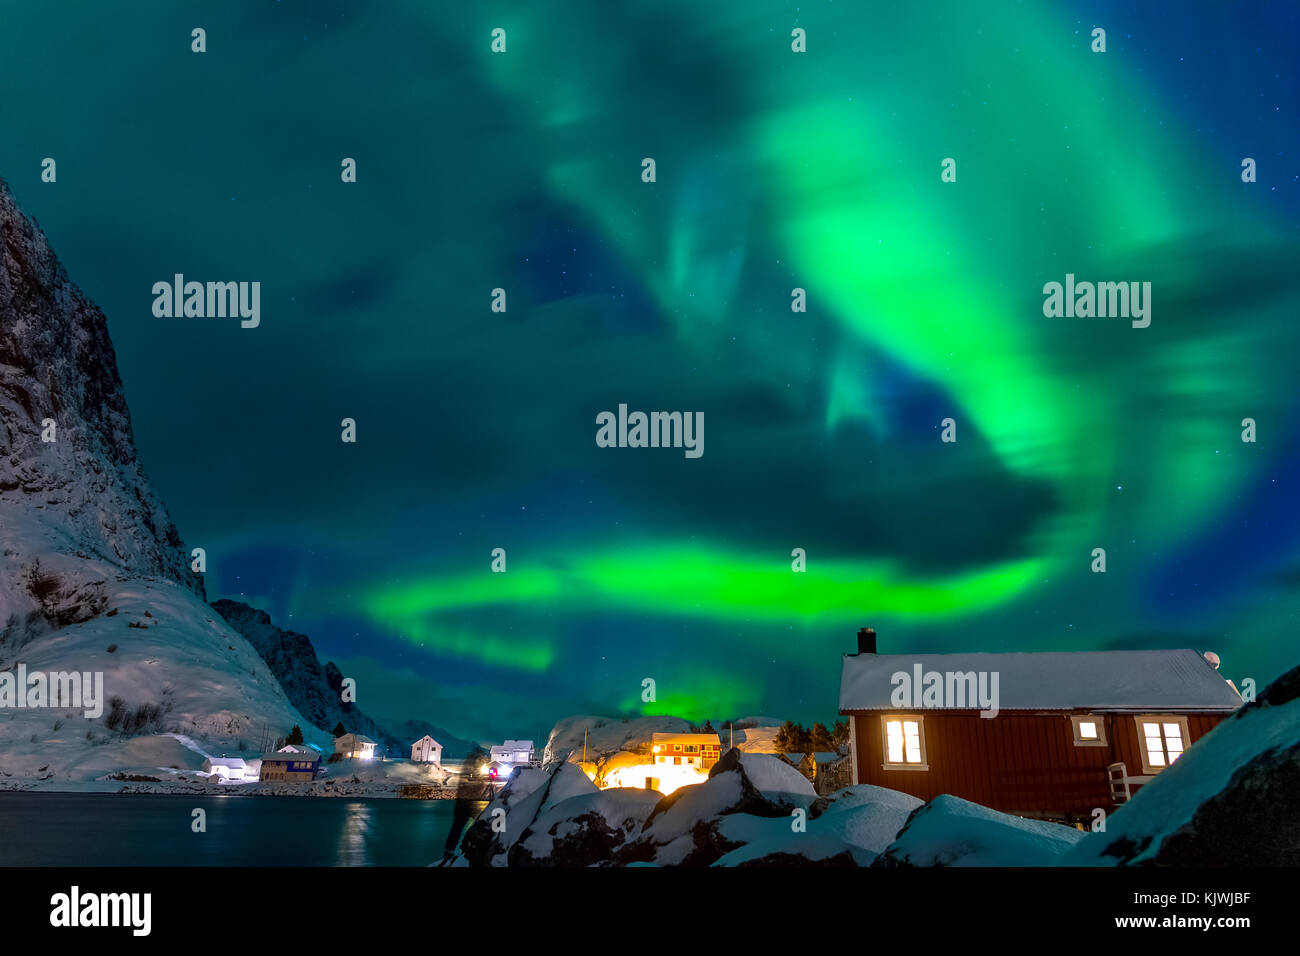 Winter Norway. Lofoten. Hamnoya town. Aurora Borealis above the roofs of houses - Stock Image